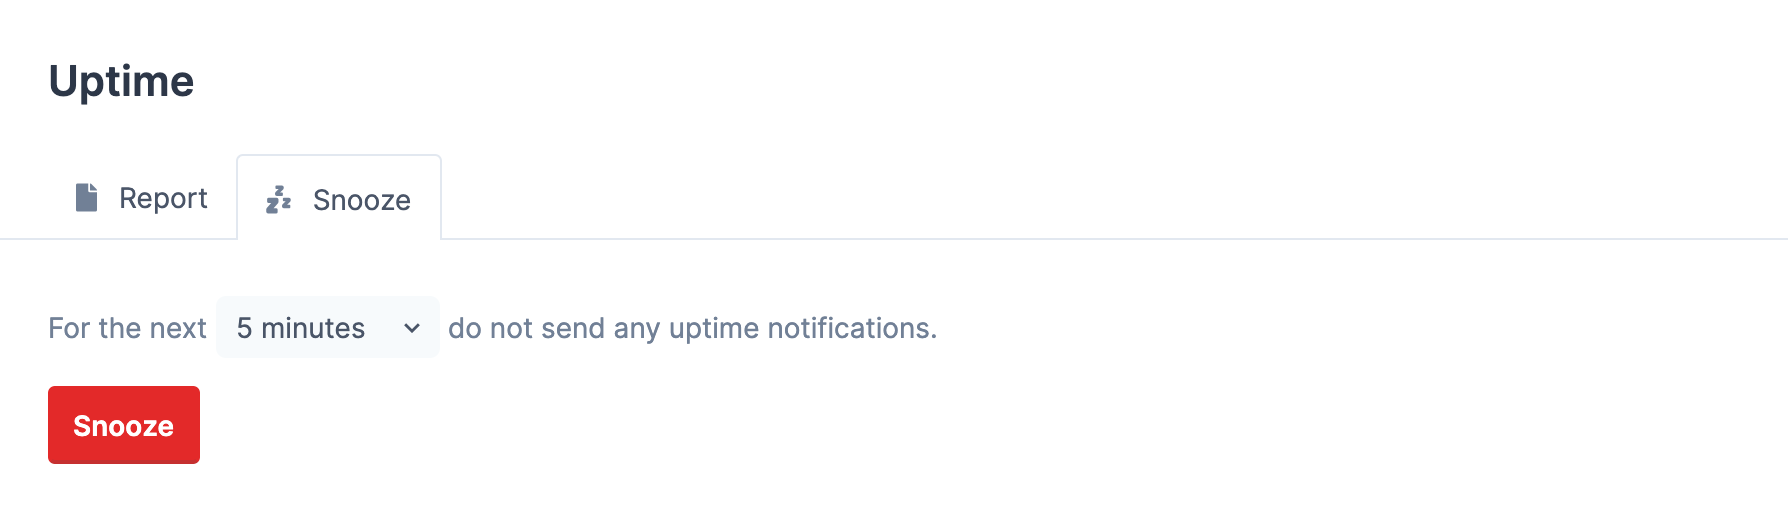 Snoozing notifications